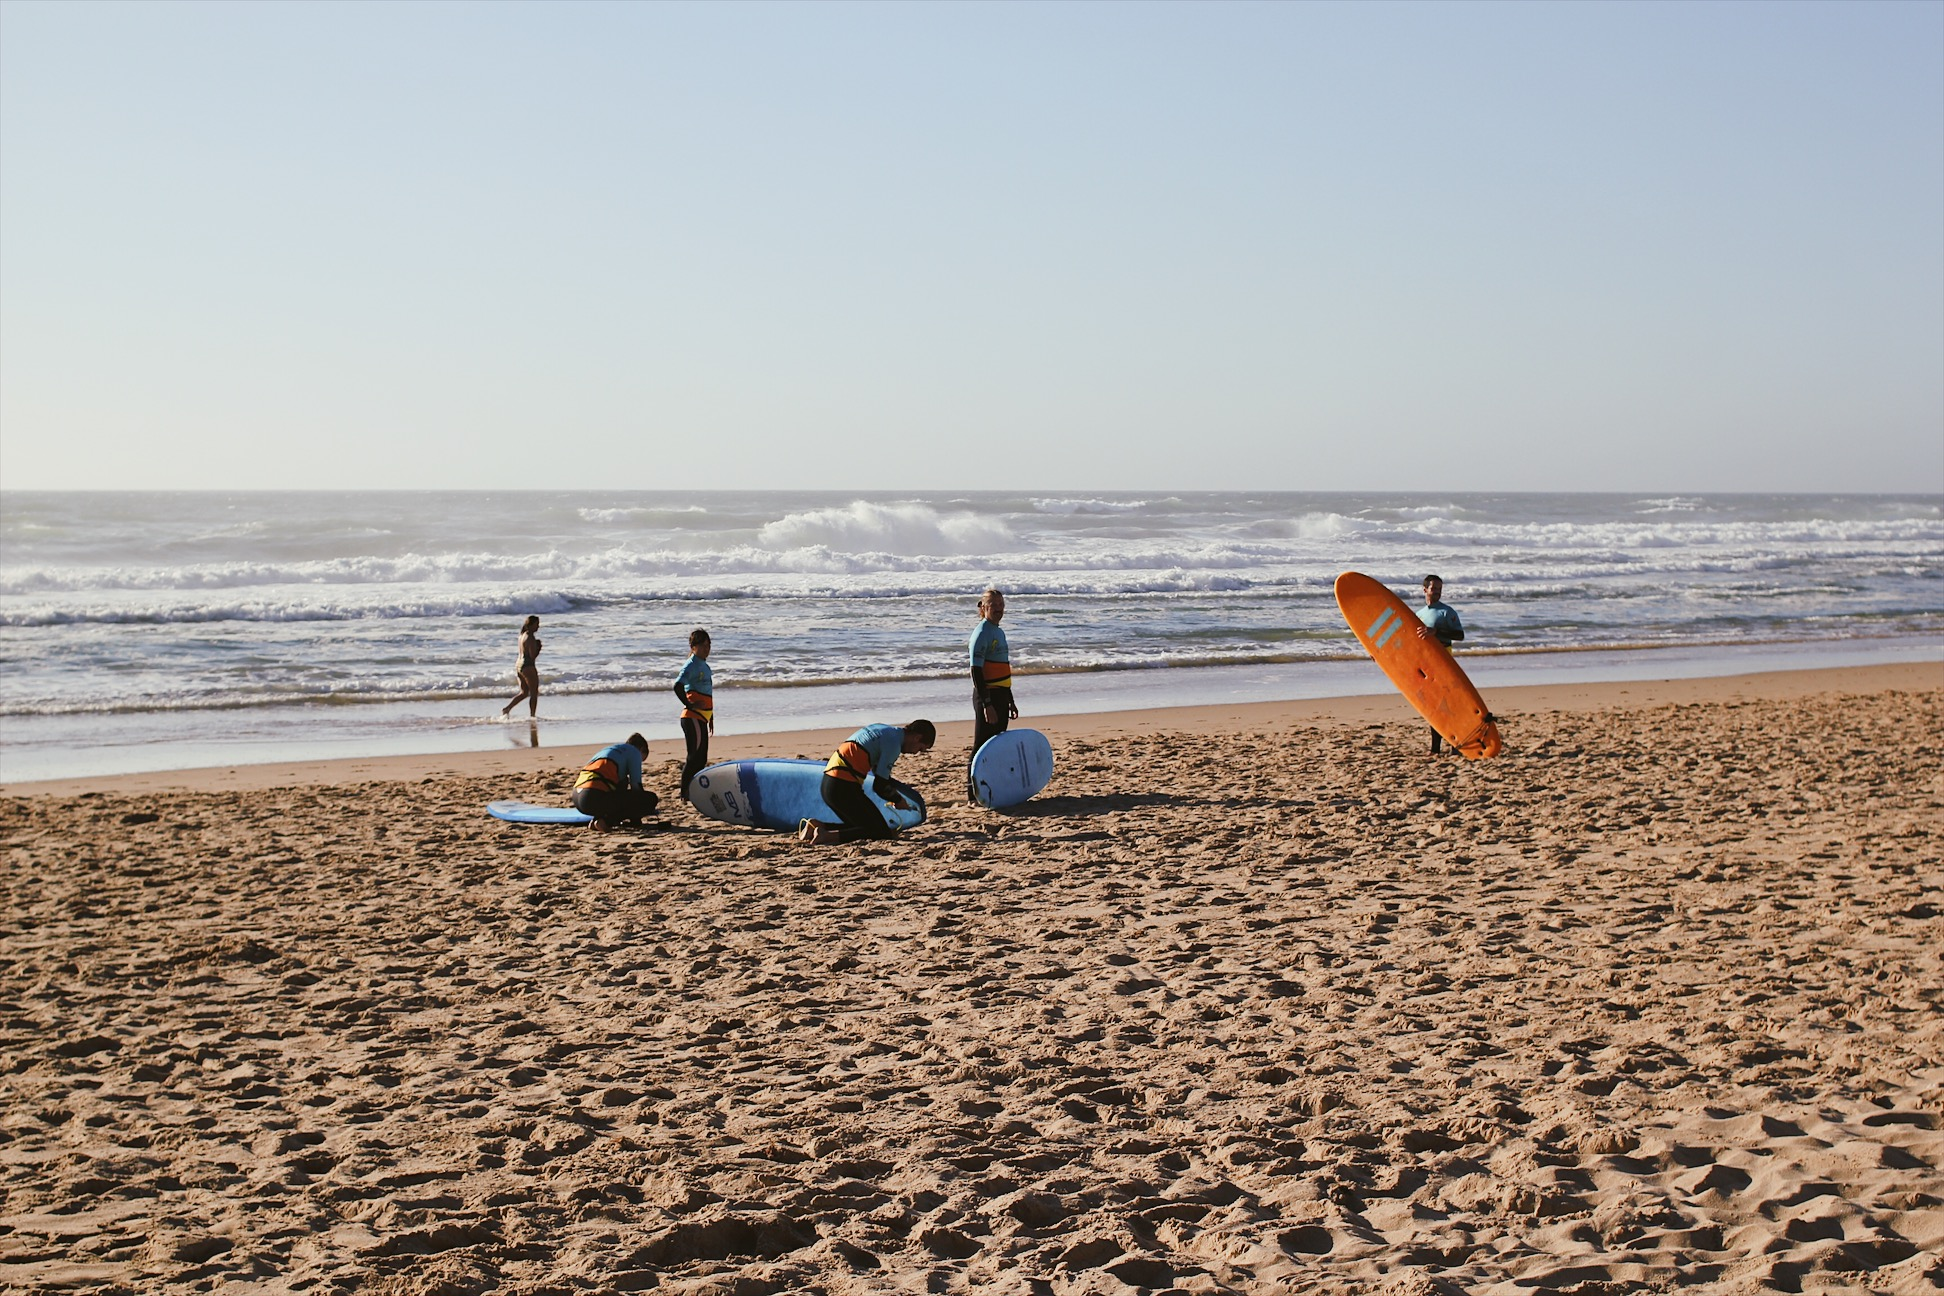 Let's go surfing! Portugal is known for it's waves, but prepare for the water being colder that you can imagine. Even on the hottest of days the temperature rarely goes above 20°C. Brrr…